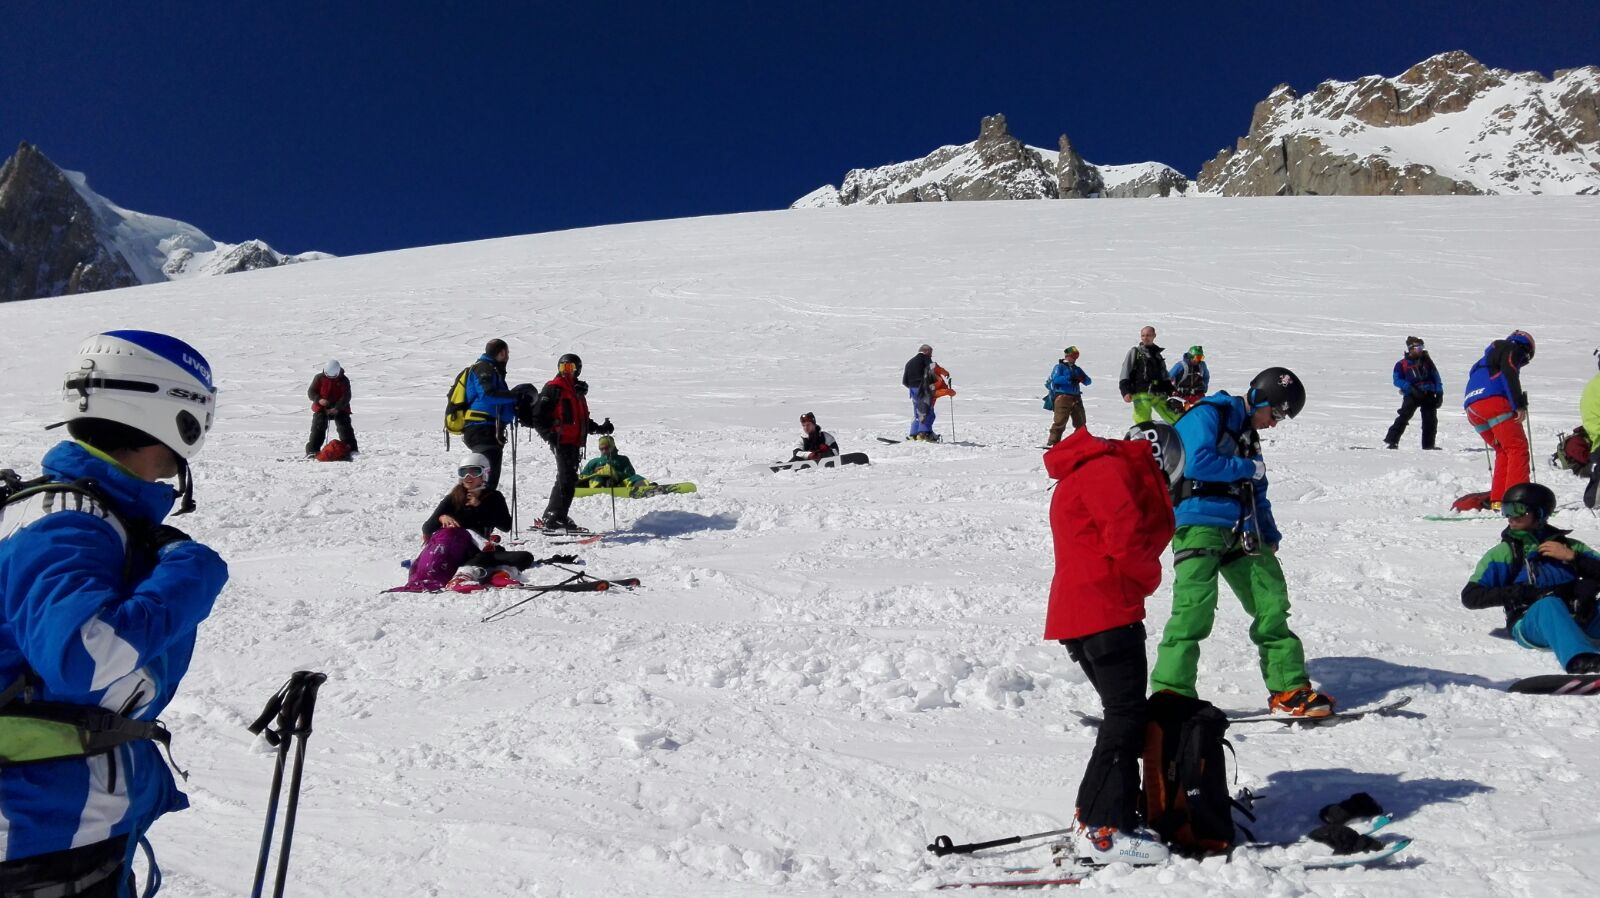 vallee blanche guide alpine proup (17)